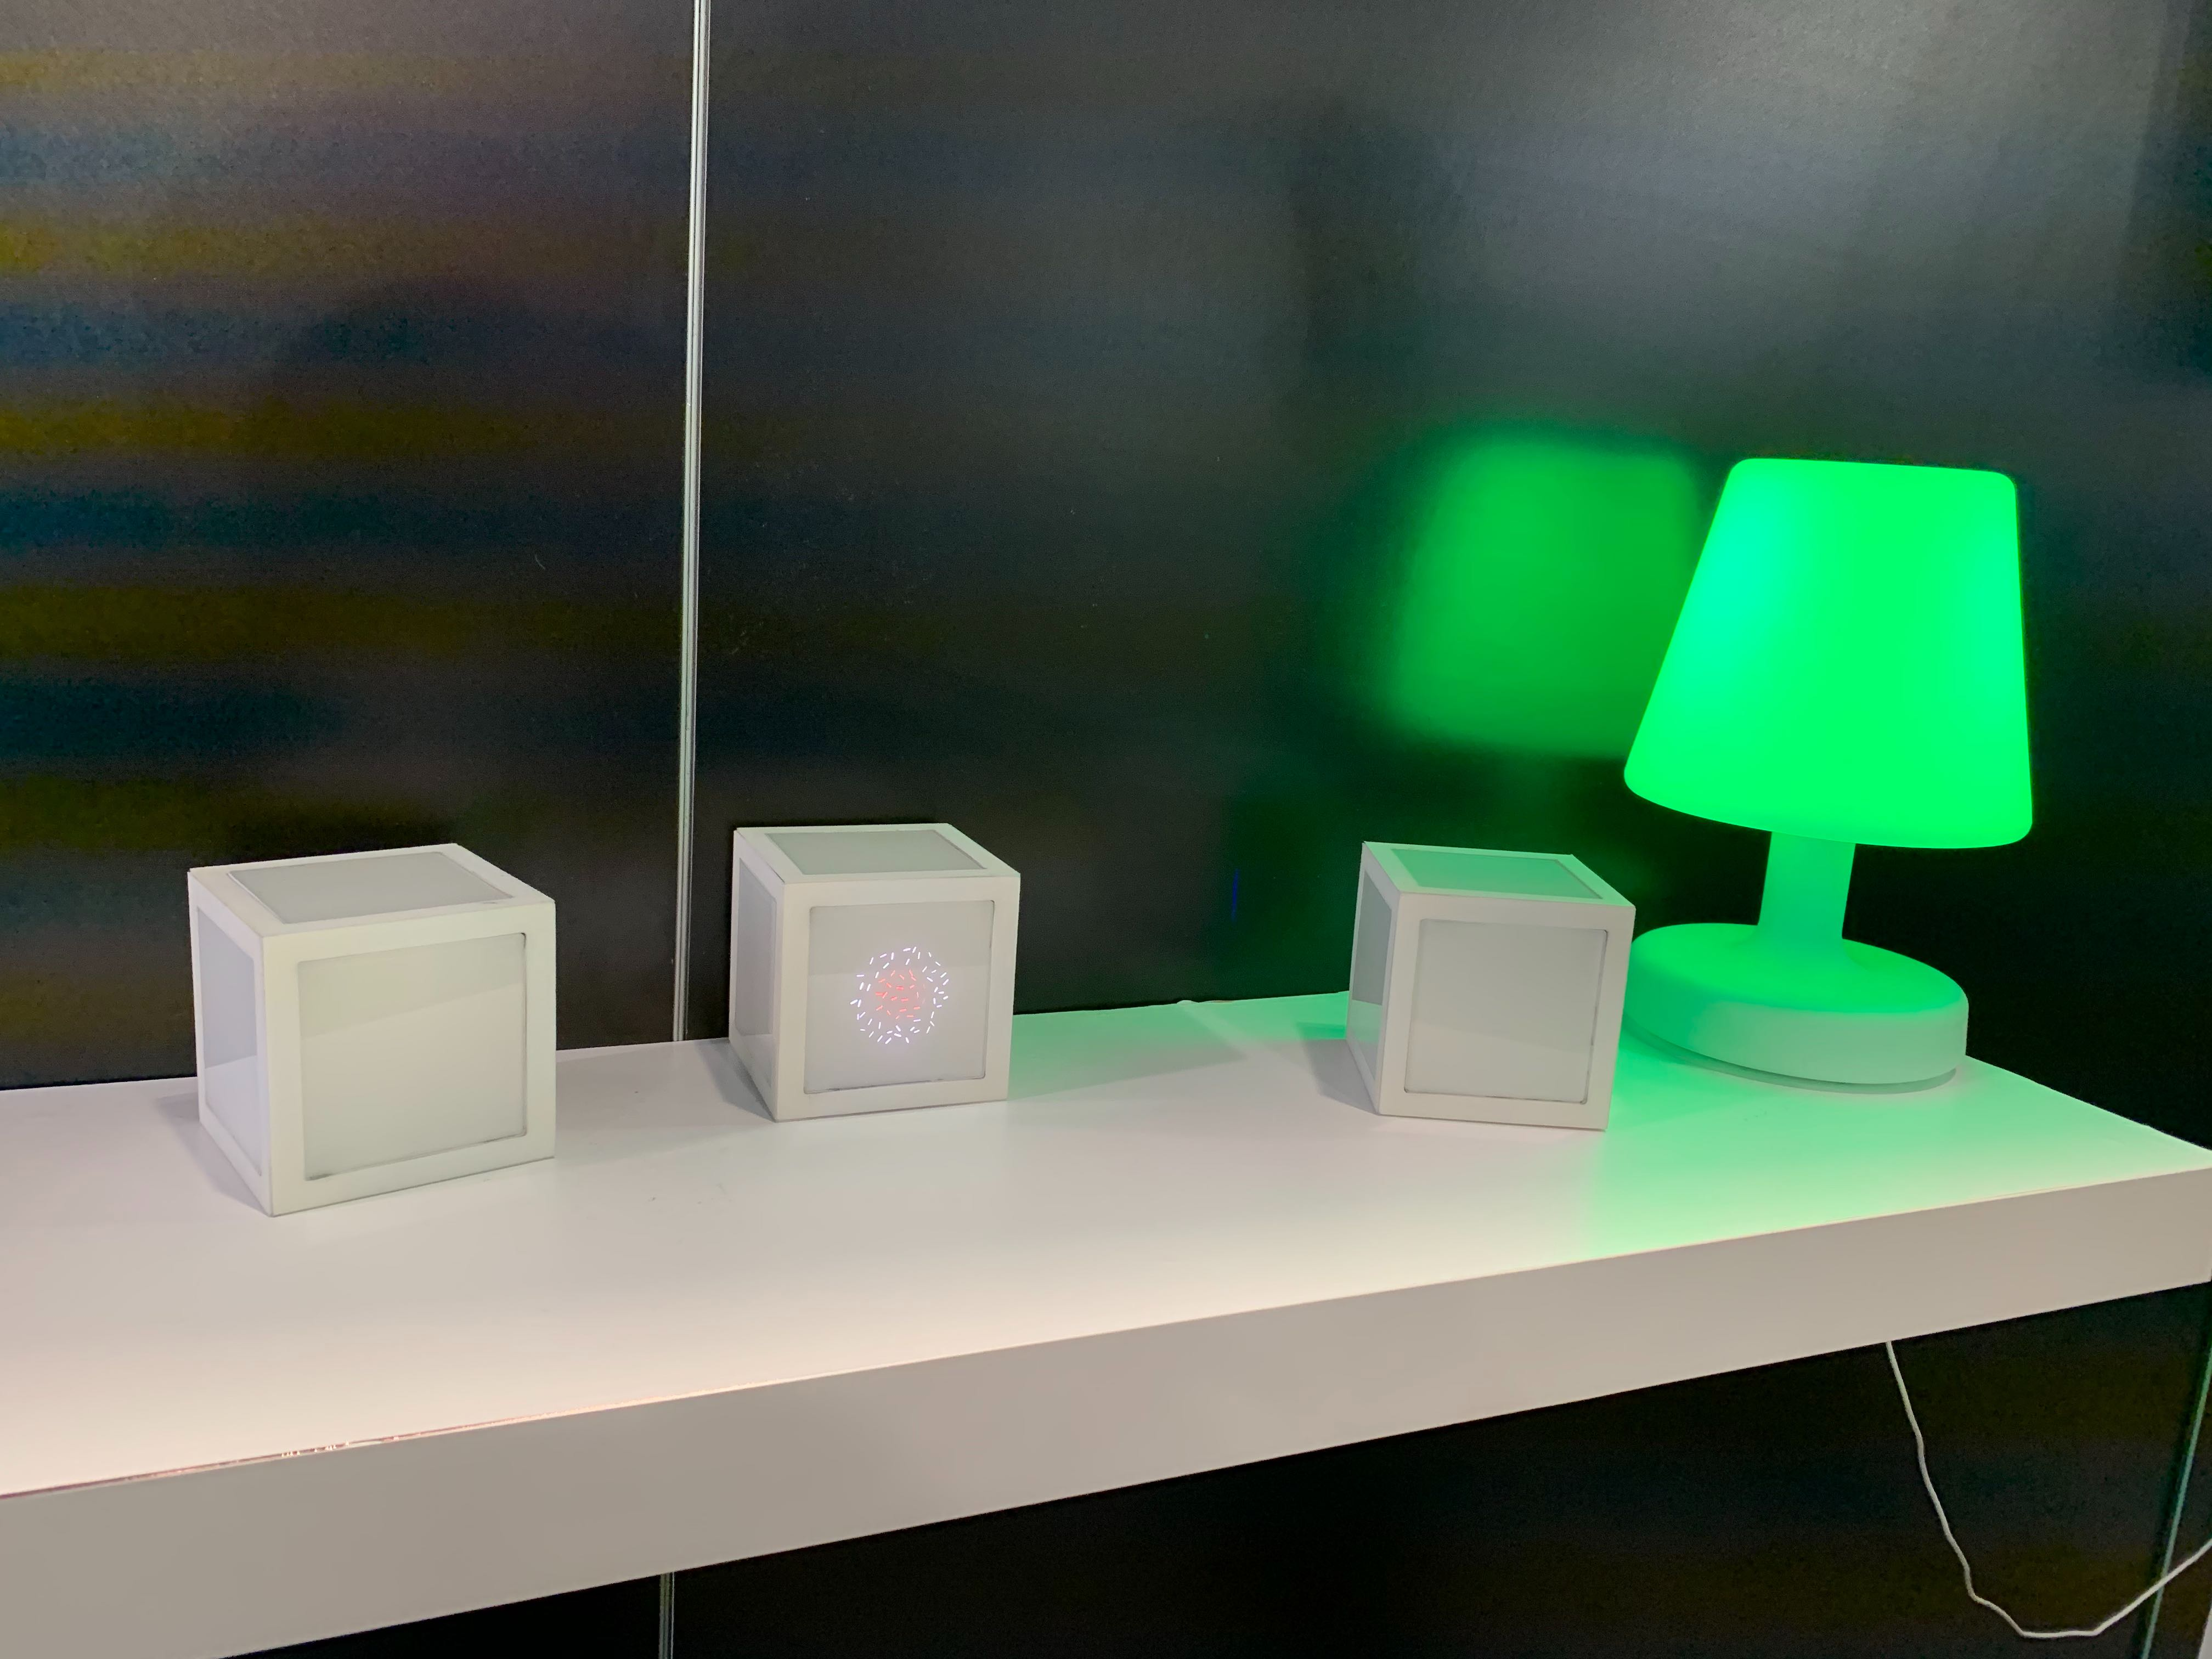 I Controlled a Lamp With My Brainwaves at CES 2020—Here's How It Happened